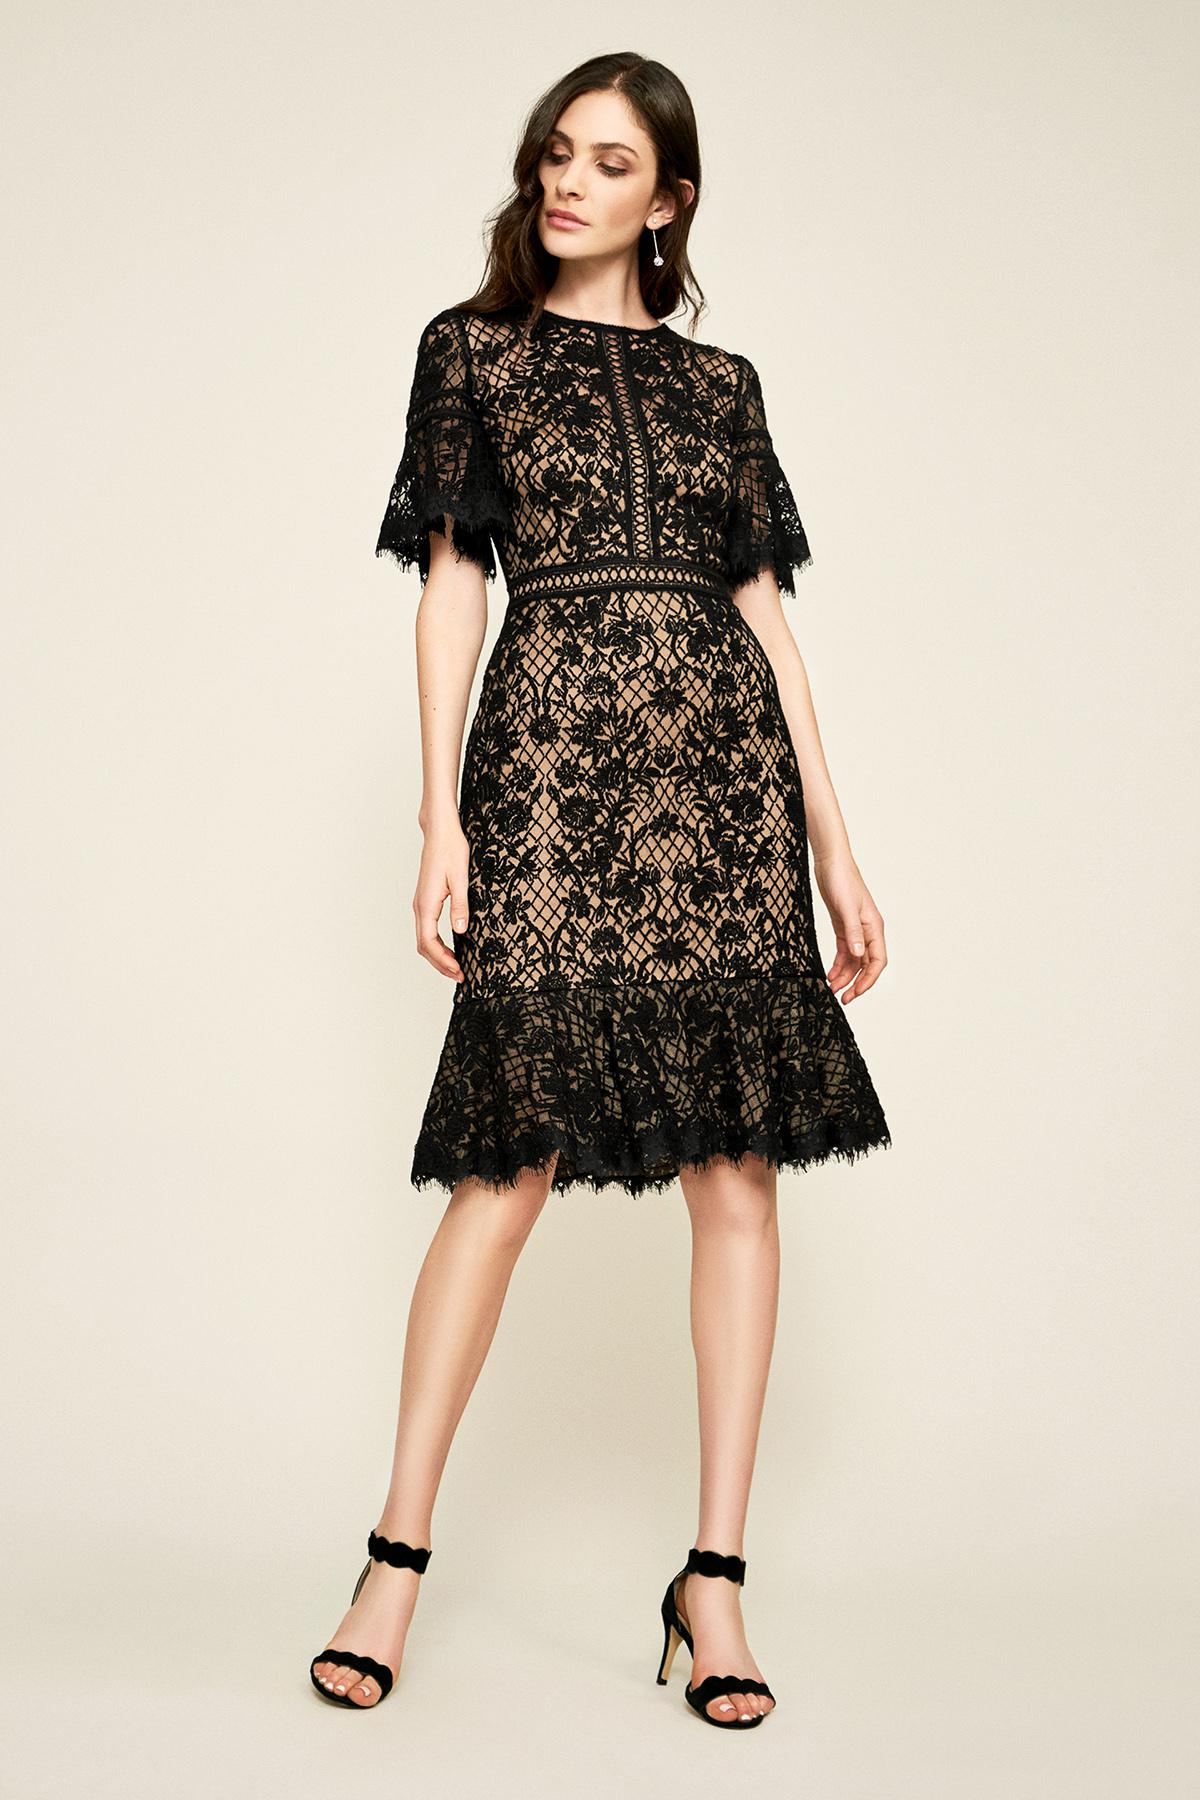 35cec0f83b0 Lyst - Tadashi Shoji Mirabelle Embroidered Dress - Petite in Black